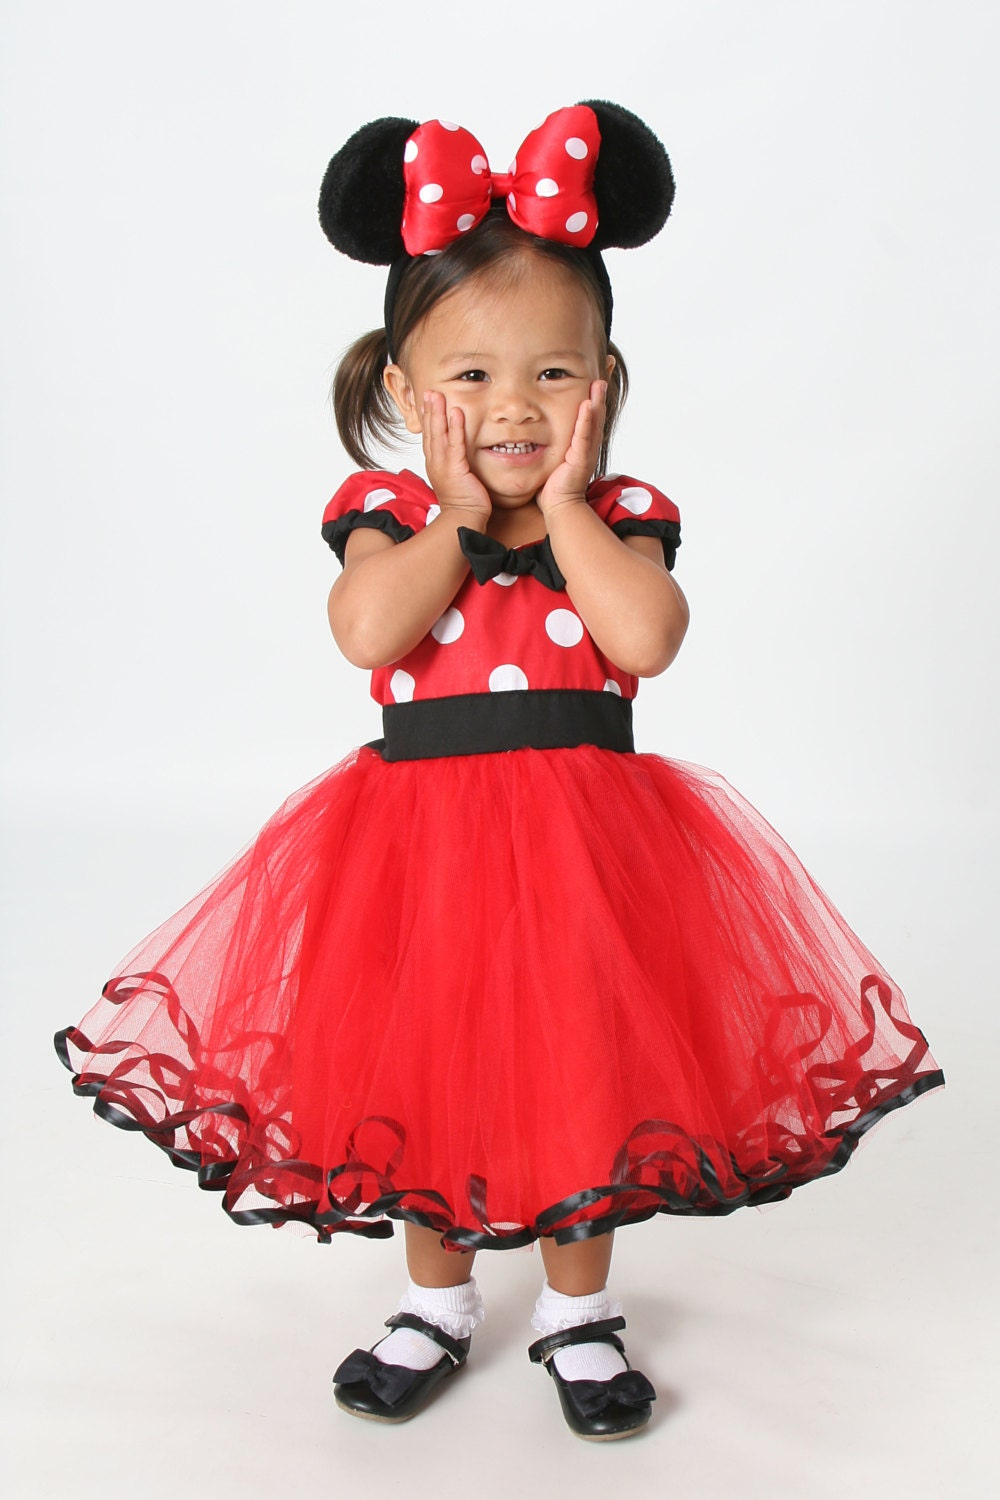 Disney Minnie Mouse Clothing. Clothing. Product - Disney Little Girls' Minnie Mouse Allover Print Knit Dress, Hot Pink (4) Product Image. Price $ Minnie Mouse Red Hearts New Large Bag Product Image. Price $ Product Title. Backpack - Disney - Minnie Mouse Red Hearts New Large Bag See Details.